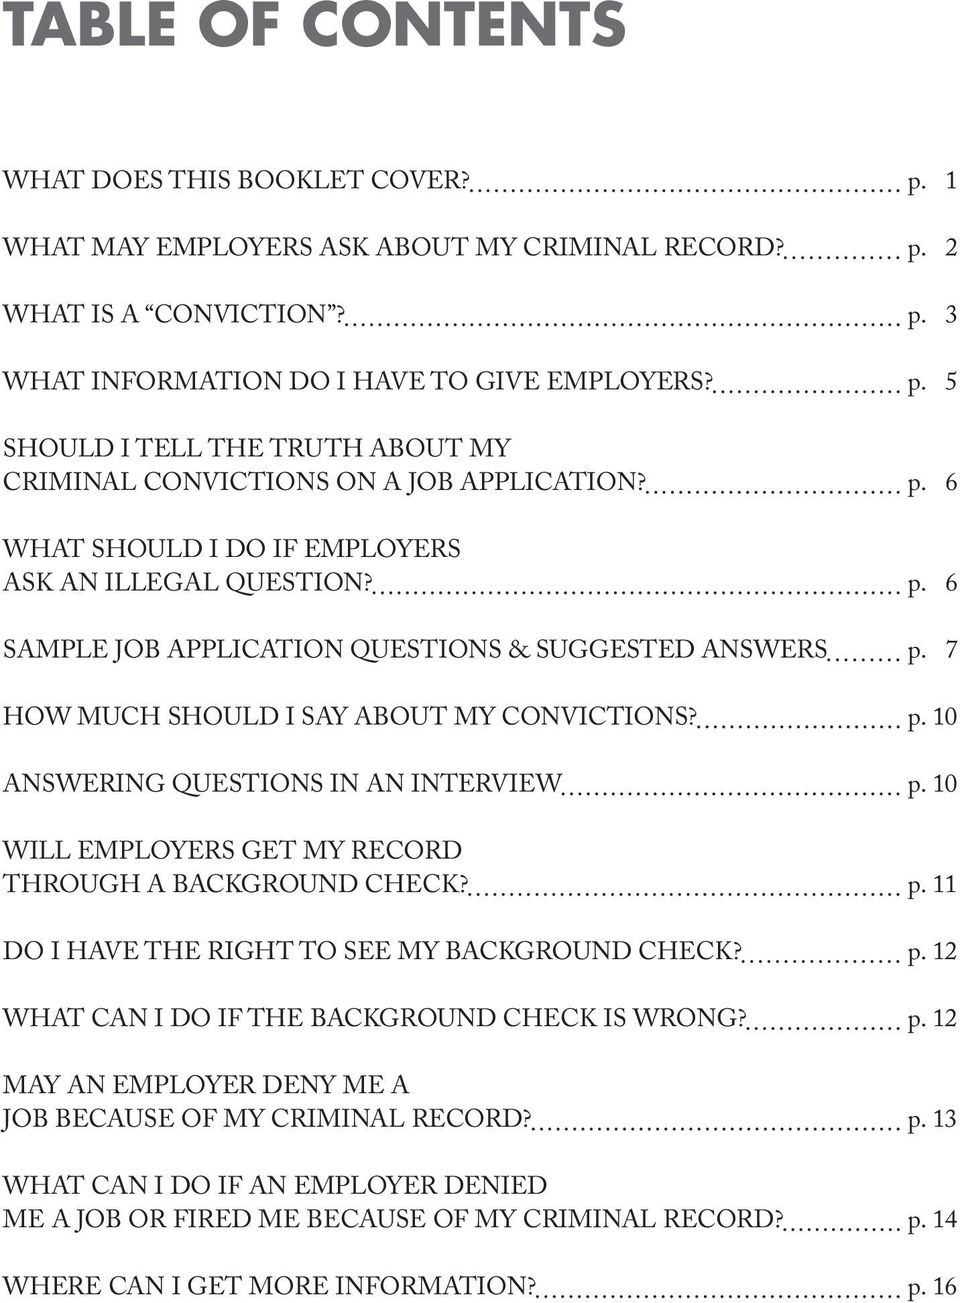 7 HOW MUCH SHOULD I SAY ABOUT MY CONVICTIONS? p. 10 ANSWERING QUESTIONS IN AN INTERVIEW p. 10 WILL EMPLOYERS GET MY RECORD THROUGH A BACKGROUND CHECK? p. 11 DO I HAVE THE RIGHT TO SEE MY BACKGROUND CHECK?